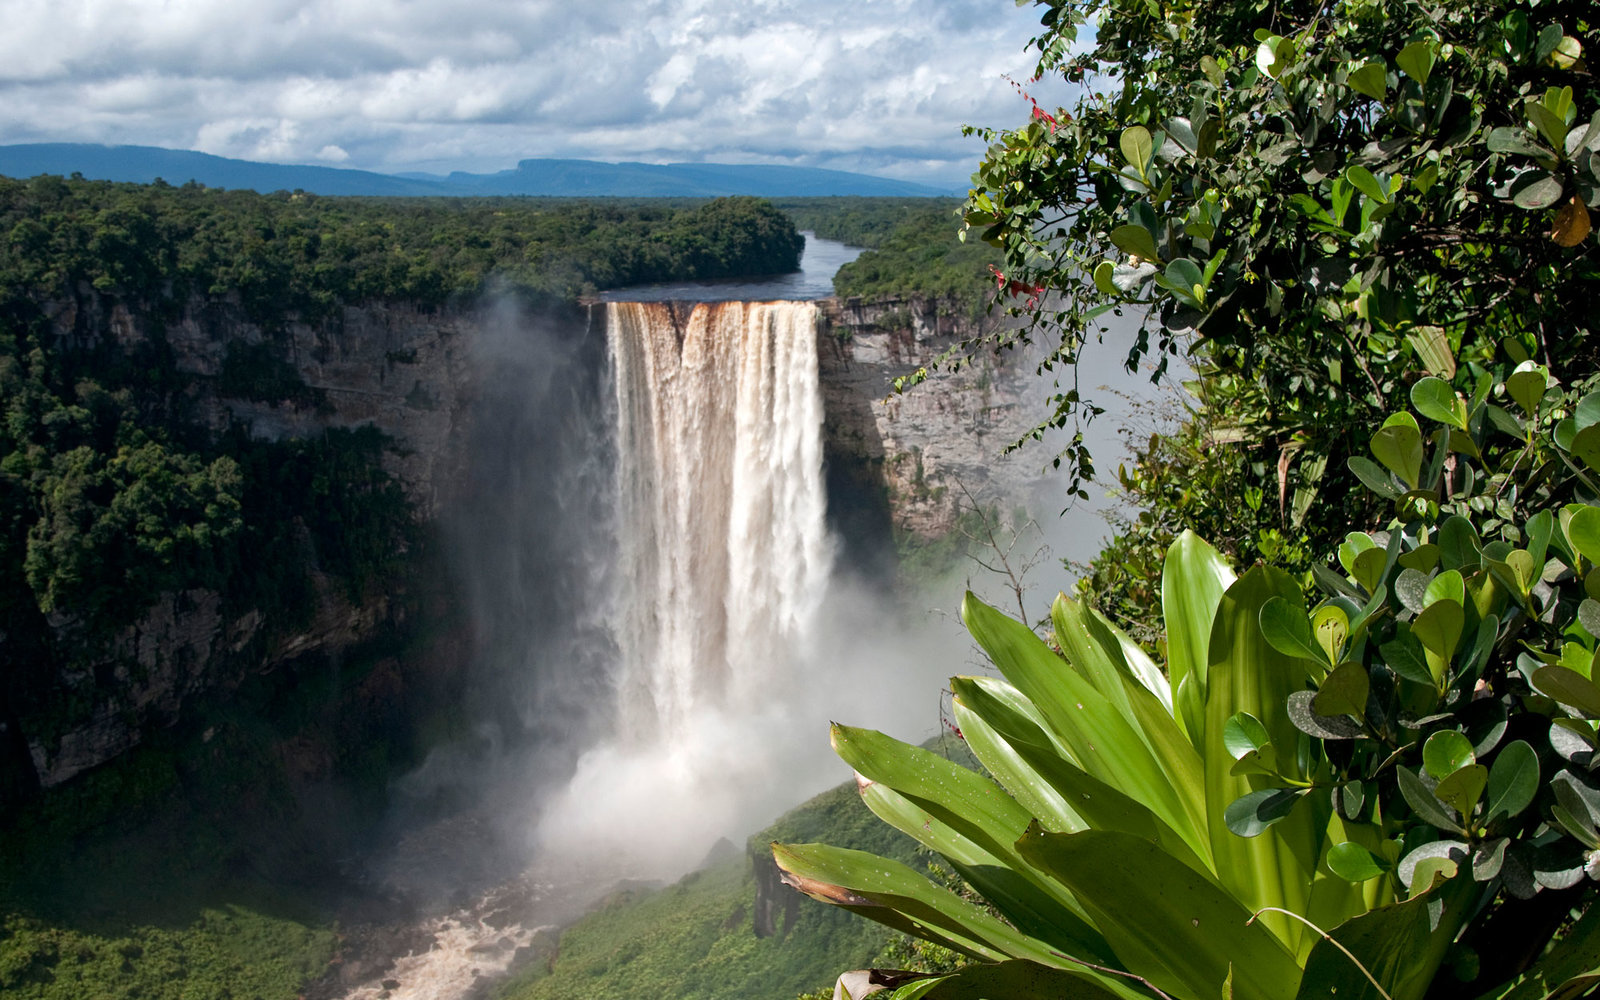 Kaieteur Falls in the background, Kaieteur National Park, Guyana, South America